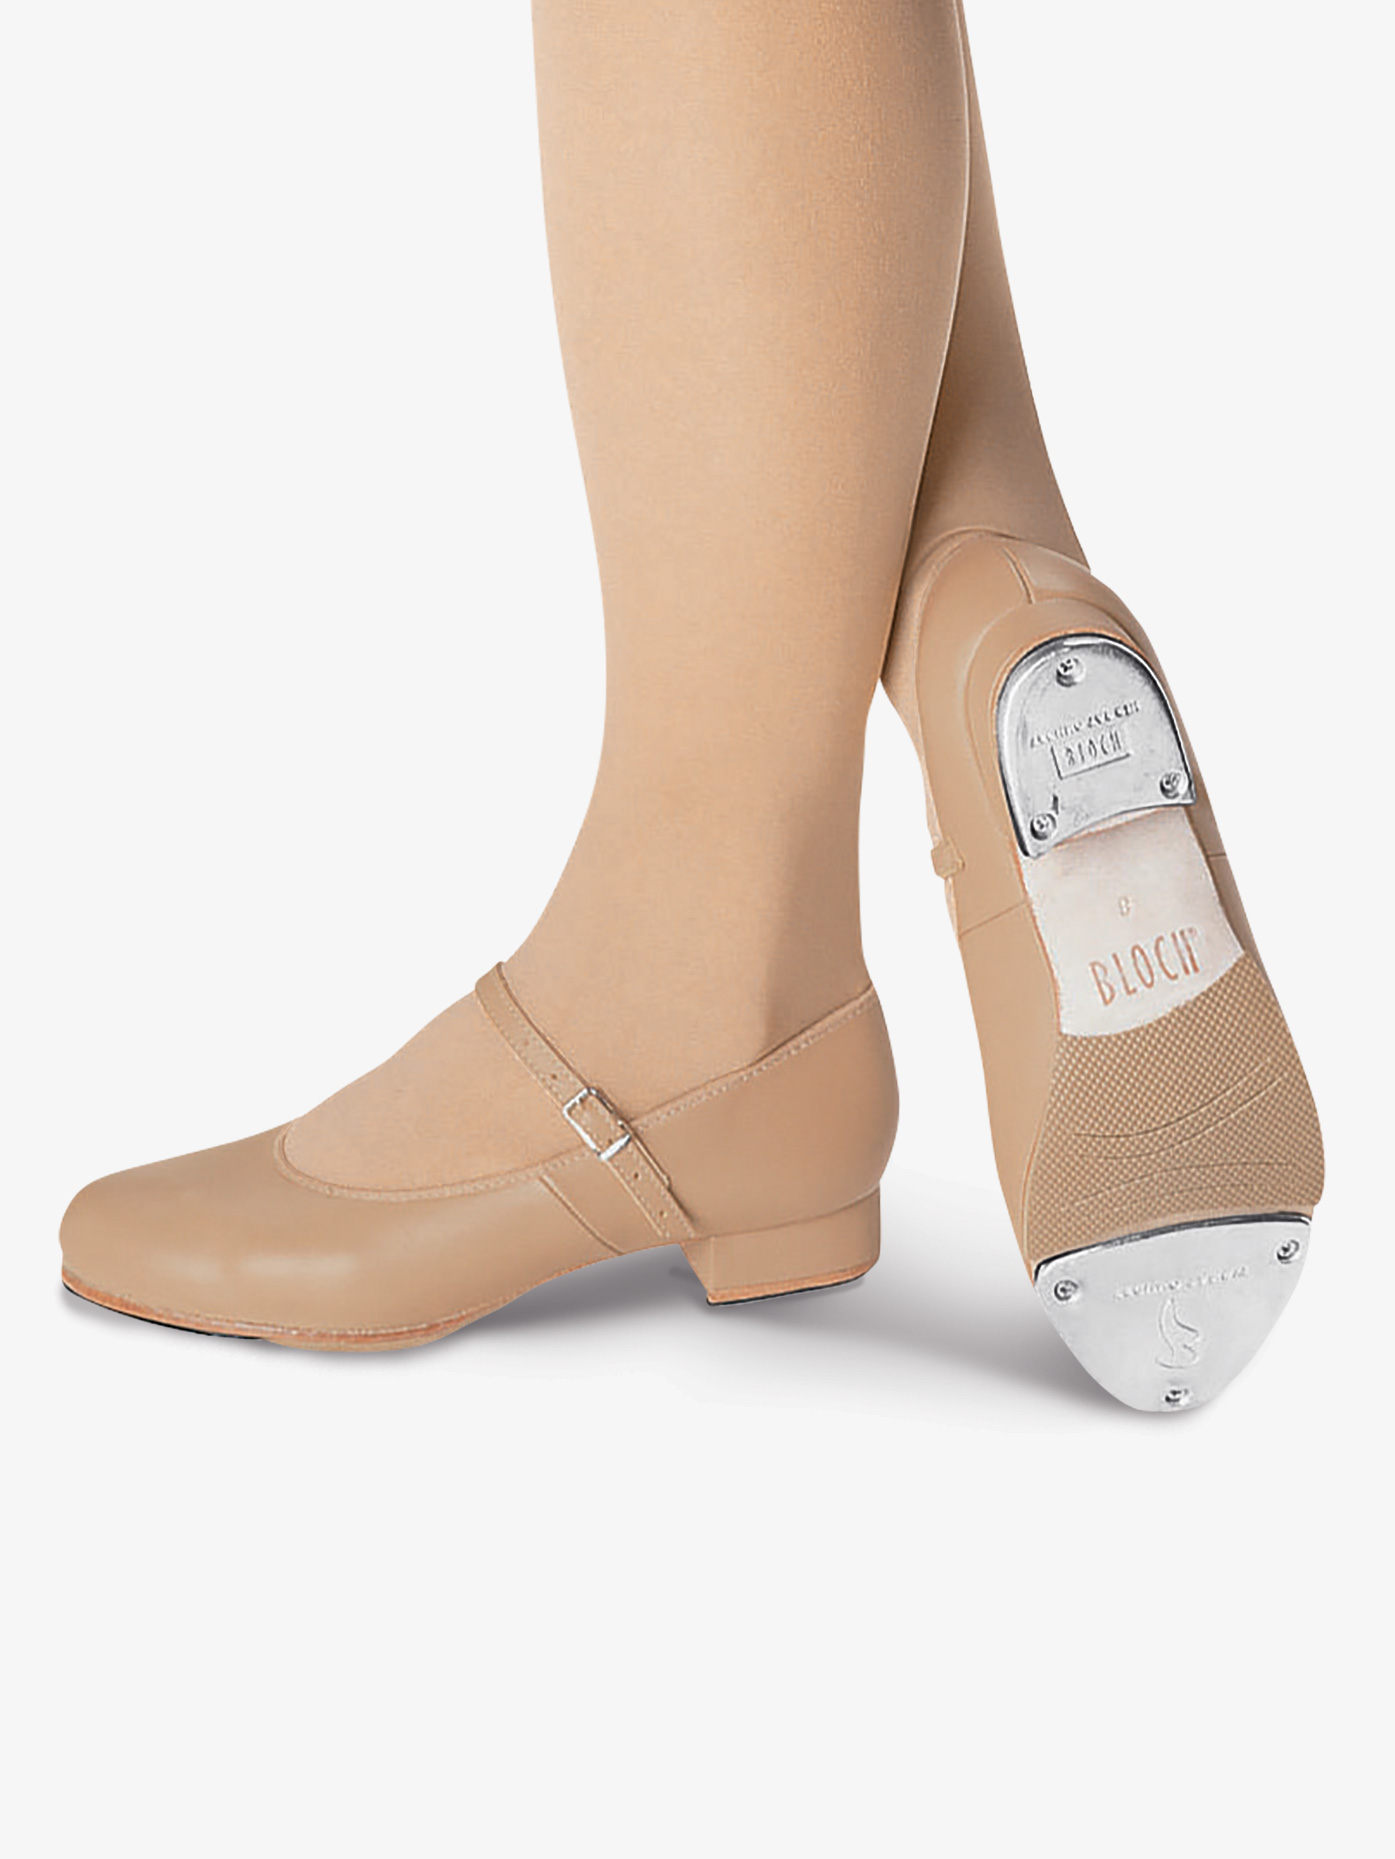 Bloch Adult Tap-On Buckle Tap Shoes S0302L